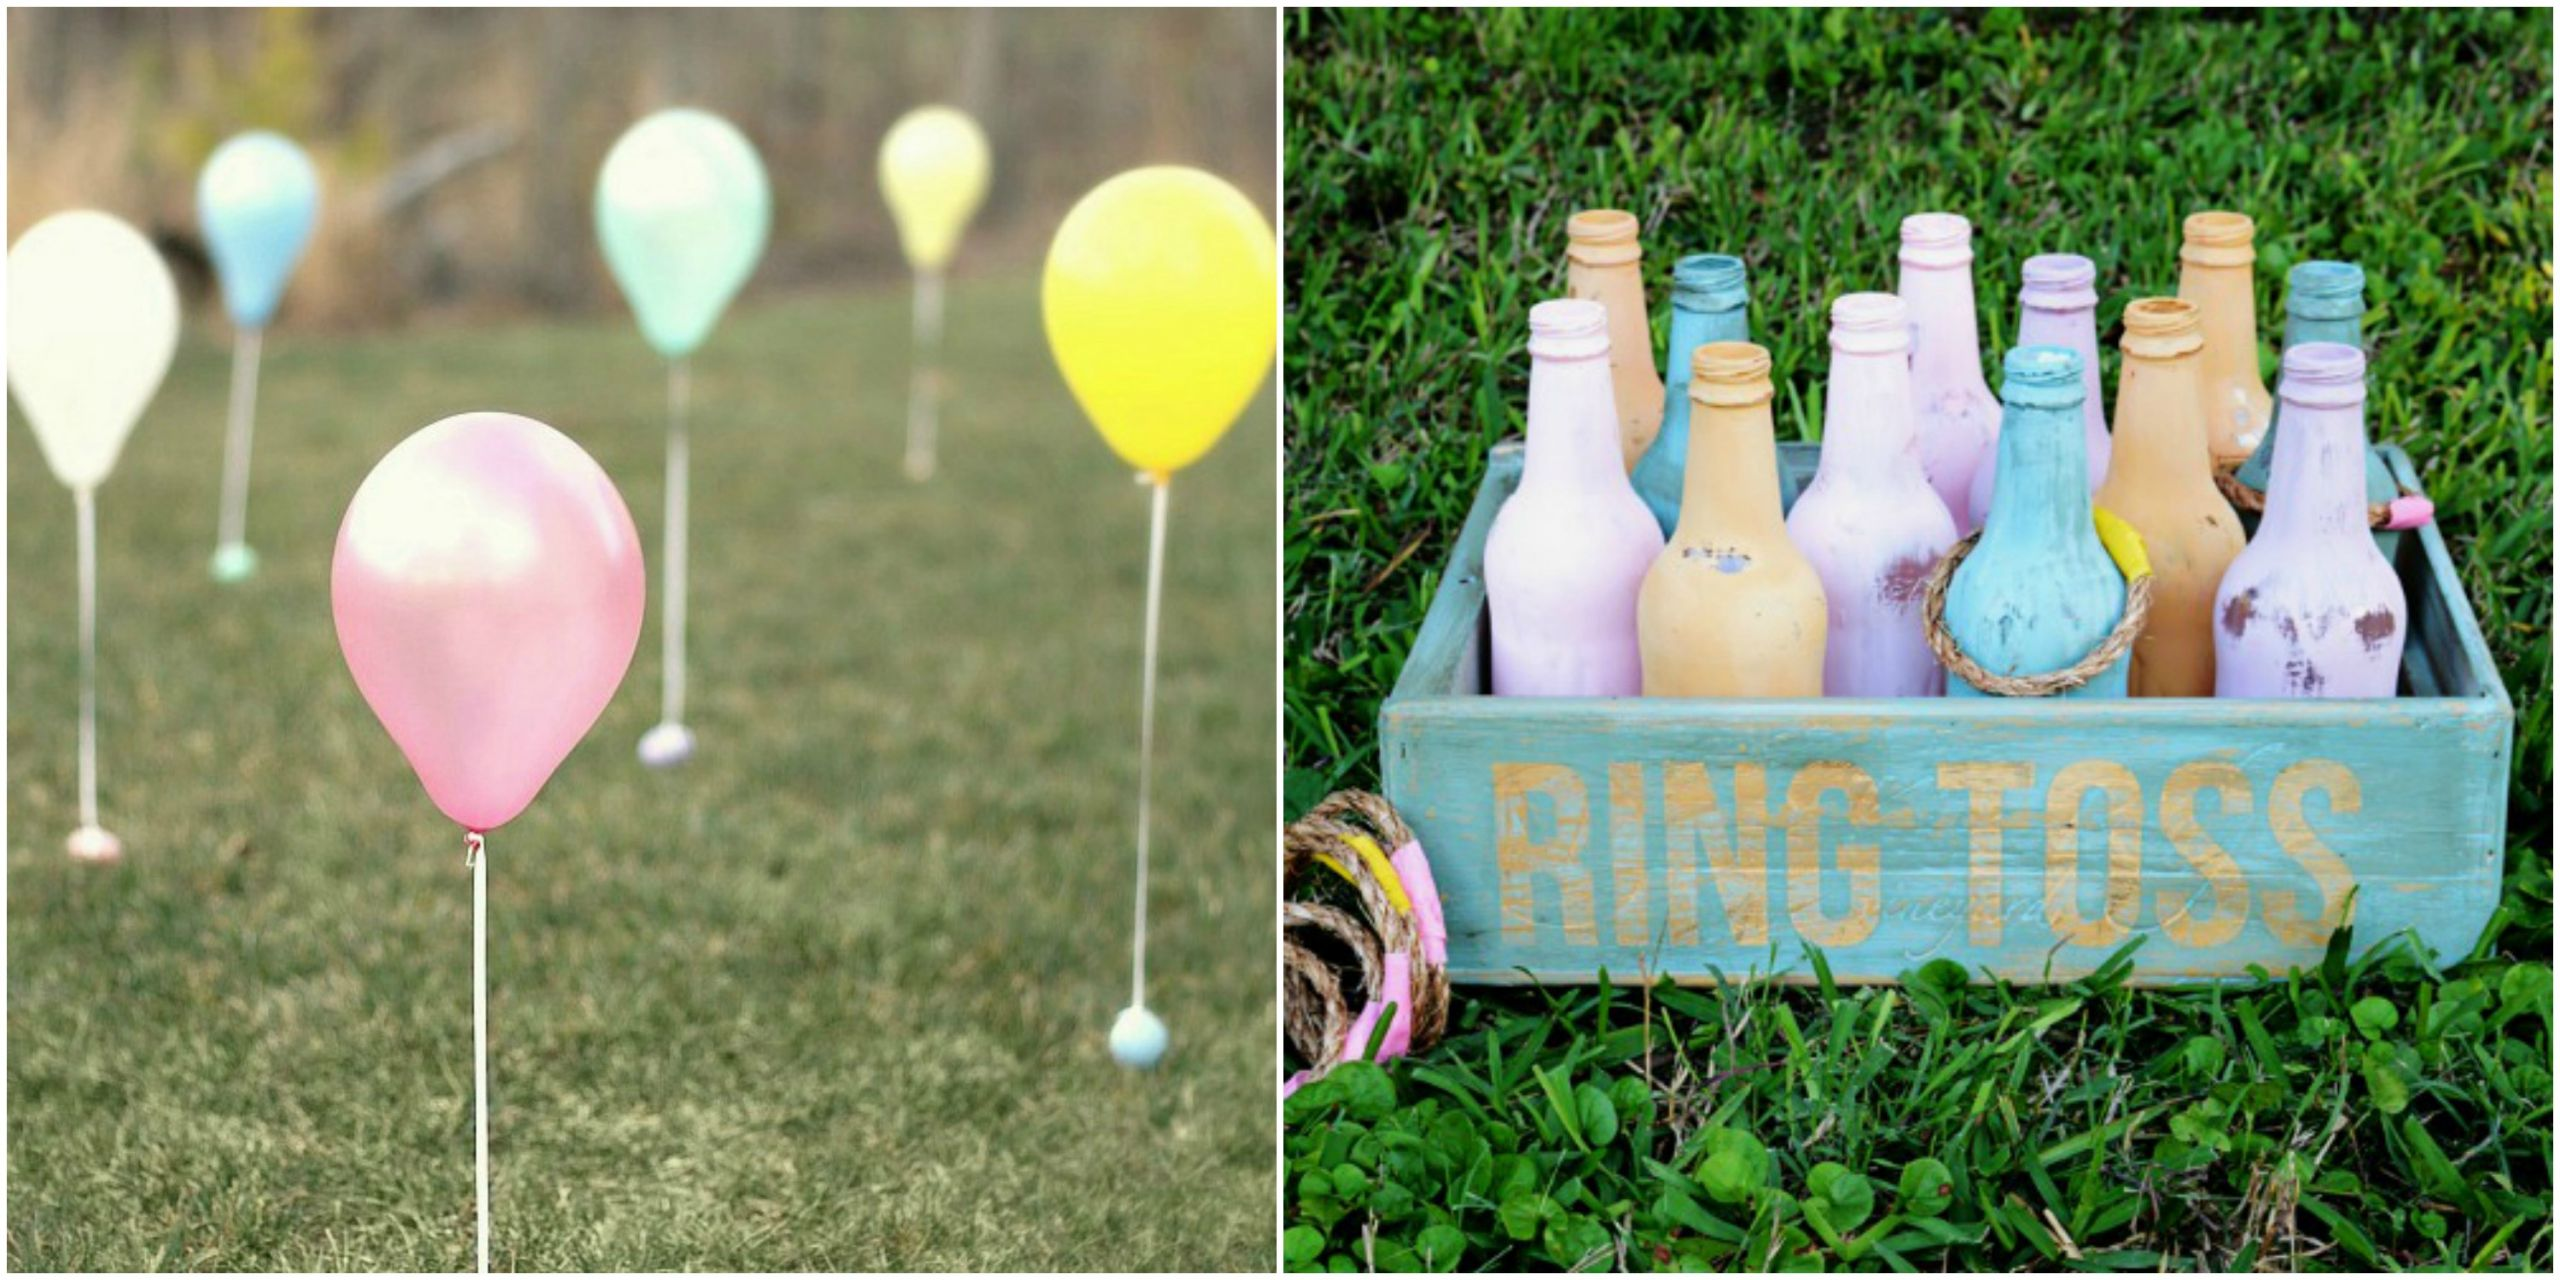 Easter Party Games For Kids  10 Fun Easter Games for Kids Easy Ideas for Easter Party